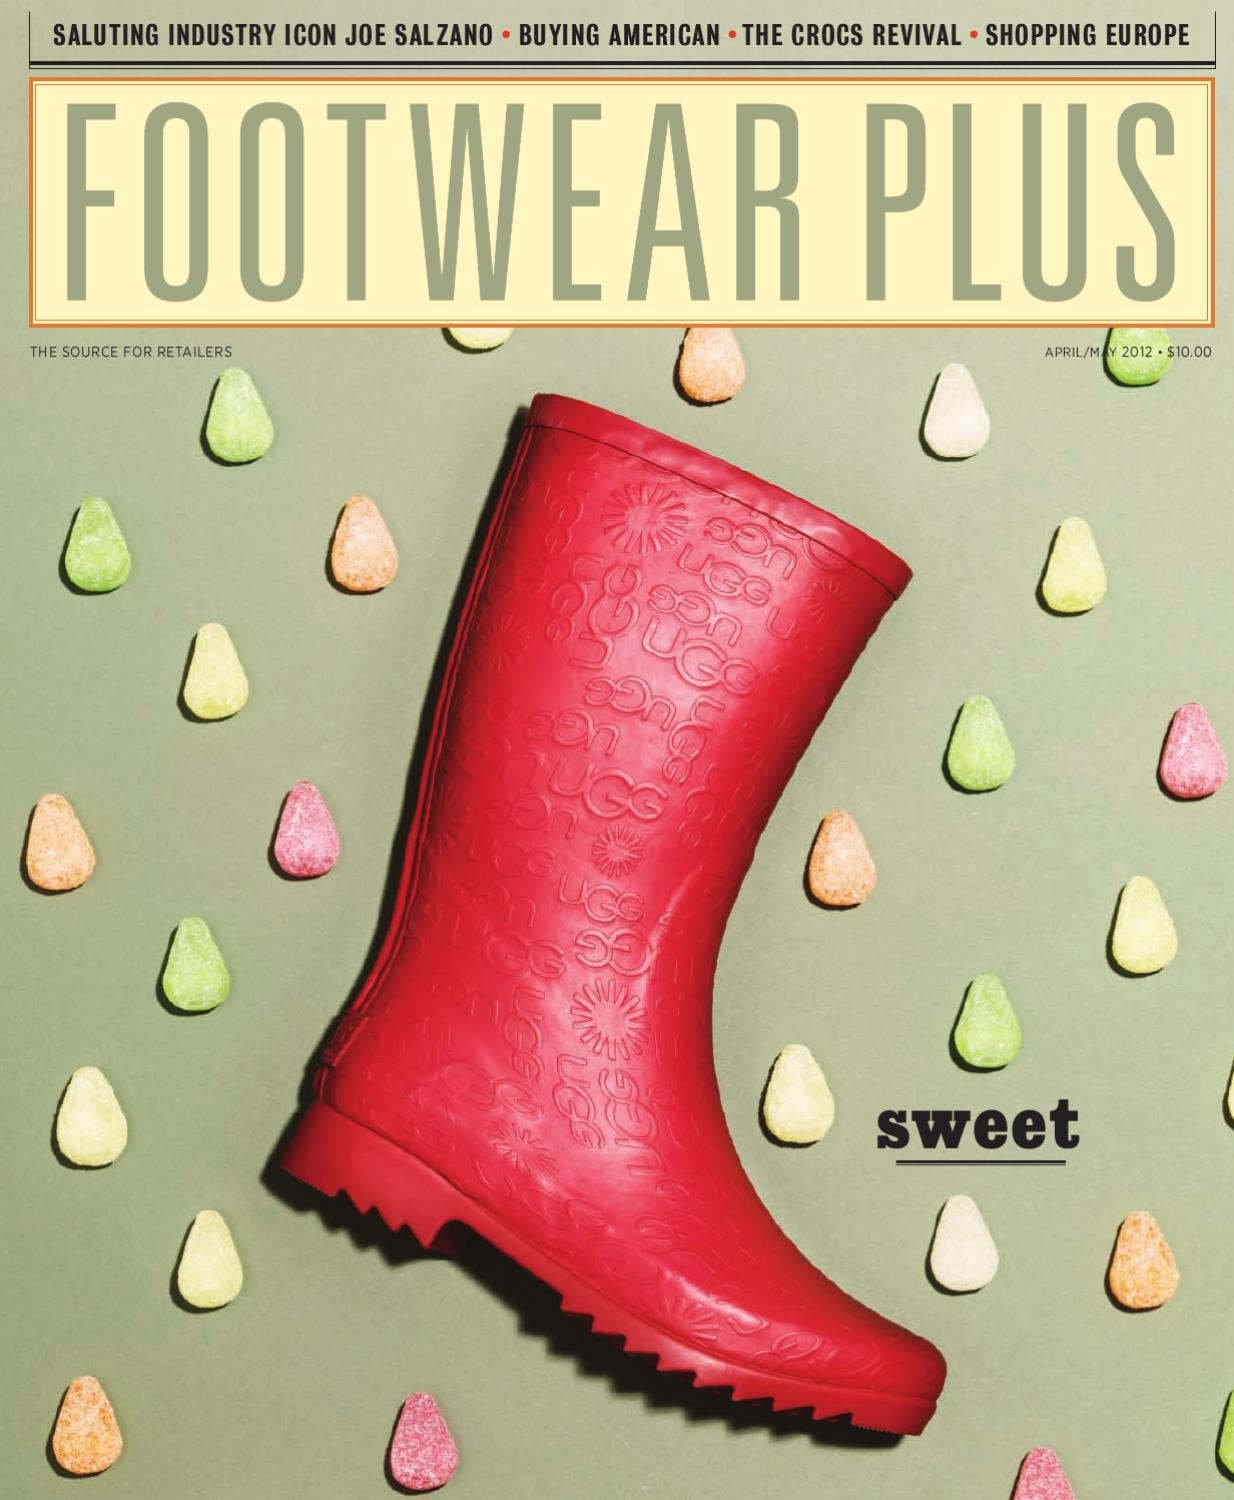 08a5569ccd0 Footwear Plus | The Source for Retailers | 2012 • April-May by ...